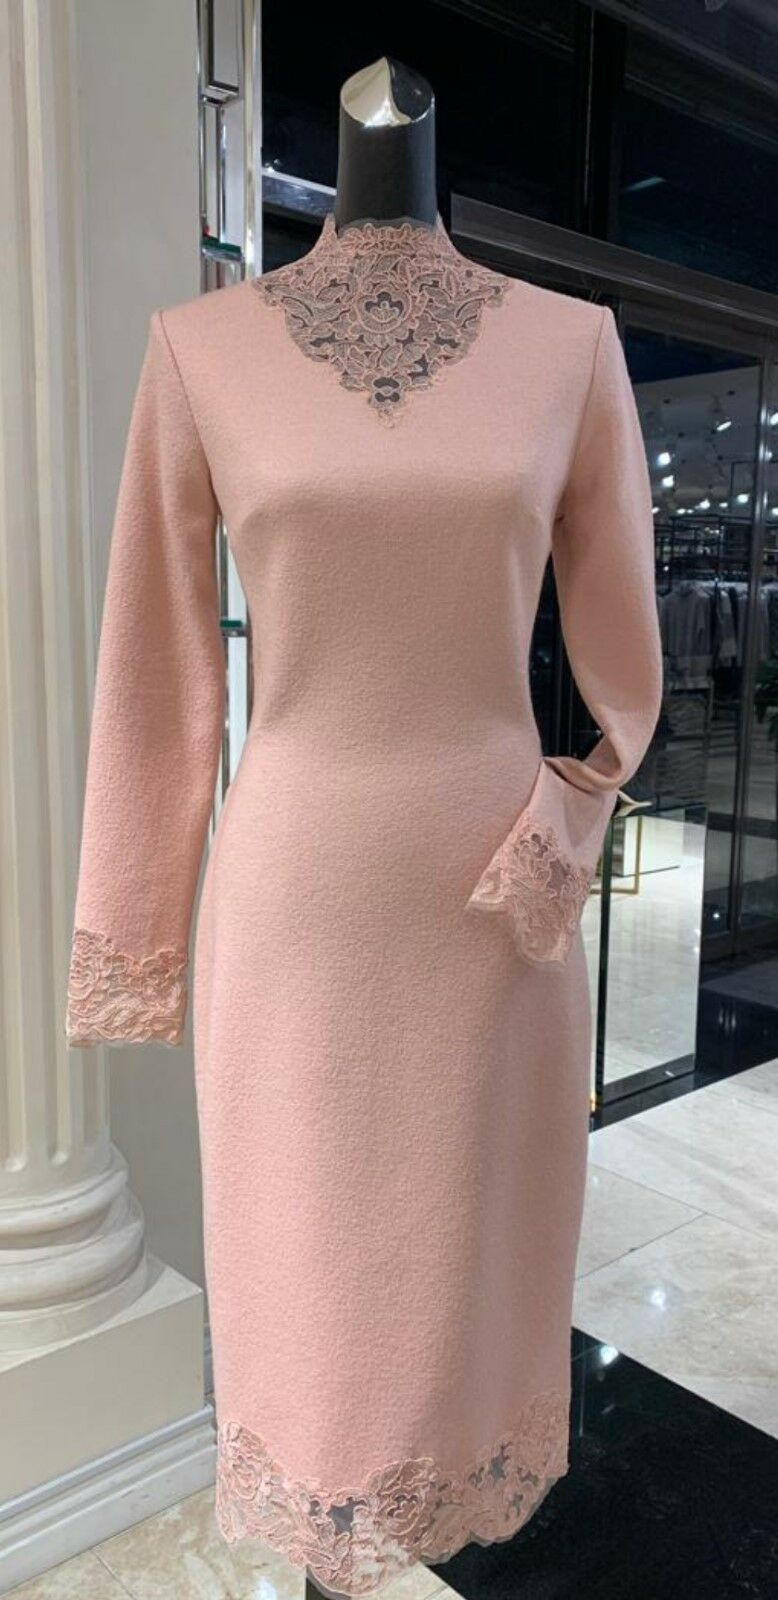 NWT  2500 ERMANNO SCERVINO DUSTY PINK BOUCLE BOUCLE BOUCLE WOOL  Dress Size It44 US S M d0a8a2